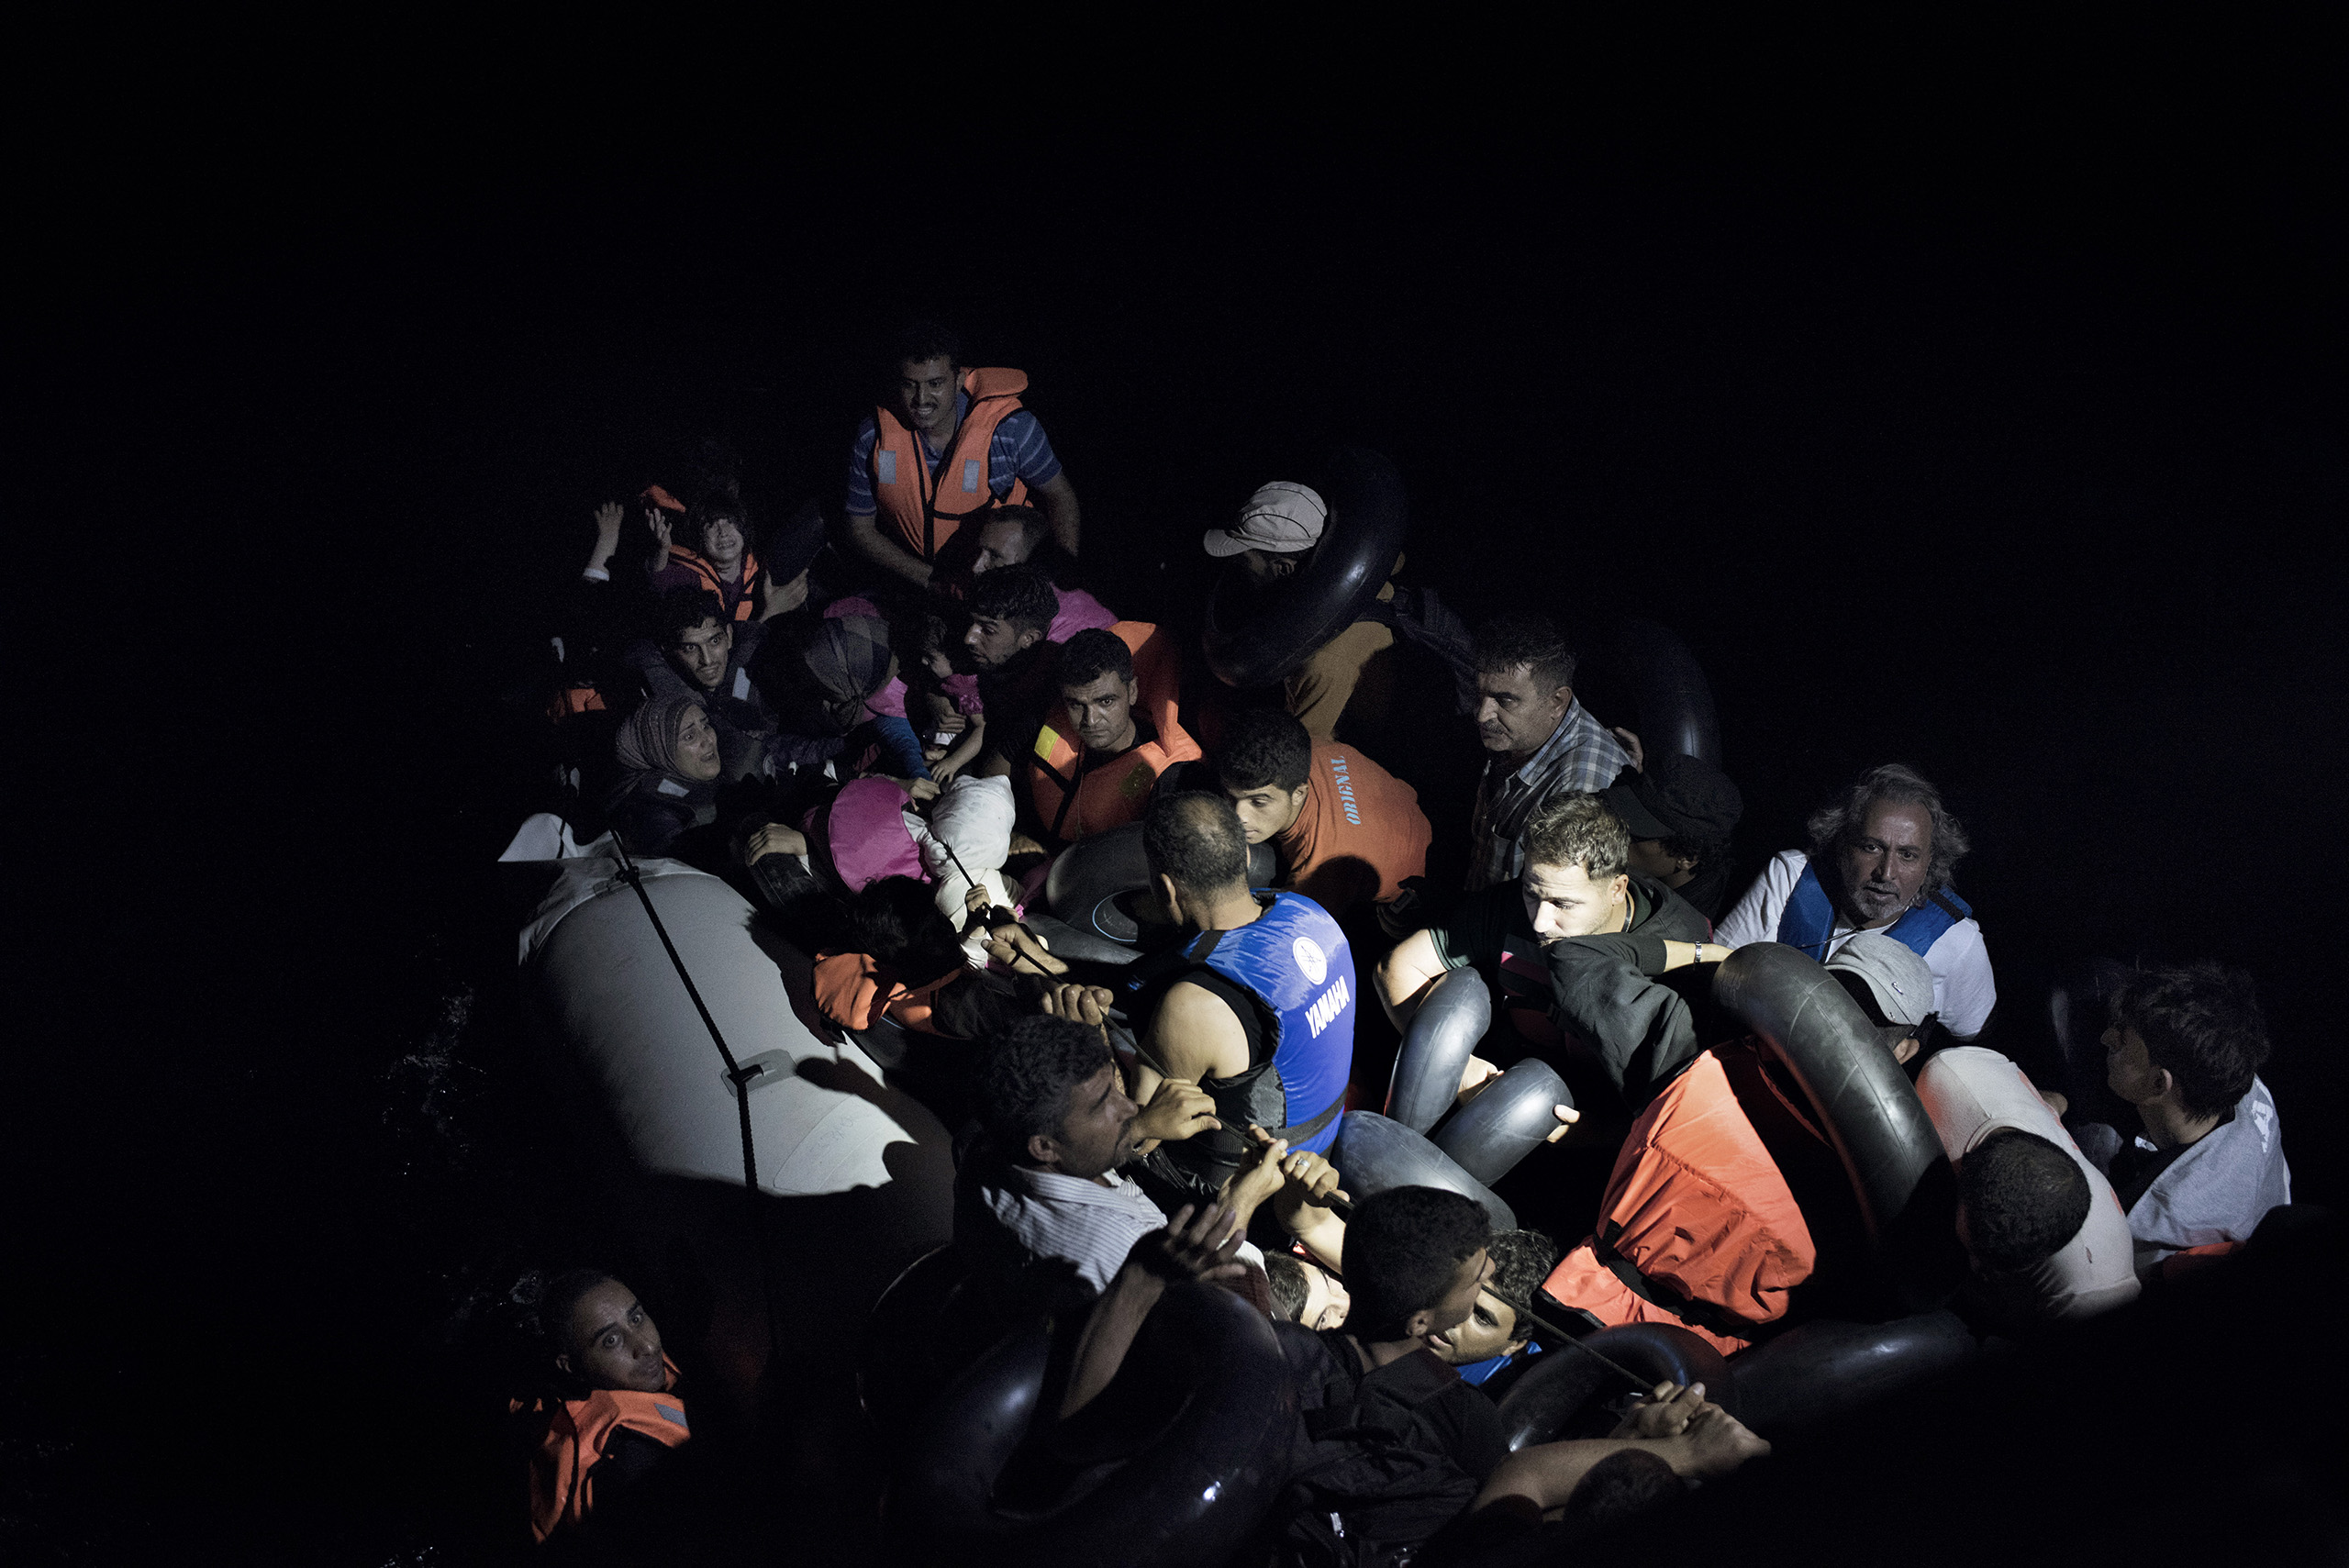 A boat full of migrants is illuminated by the flashlights of Greek coast guards who have come to rescue them from the waters near the Greek-Turkish border. Sept. 6, 2015.